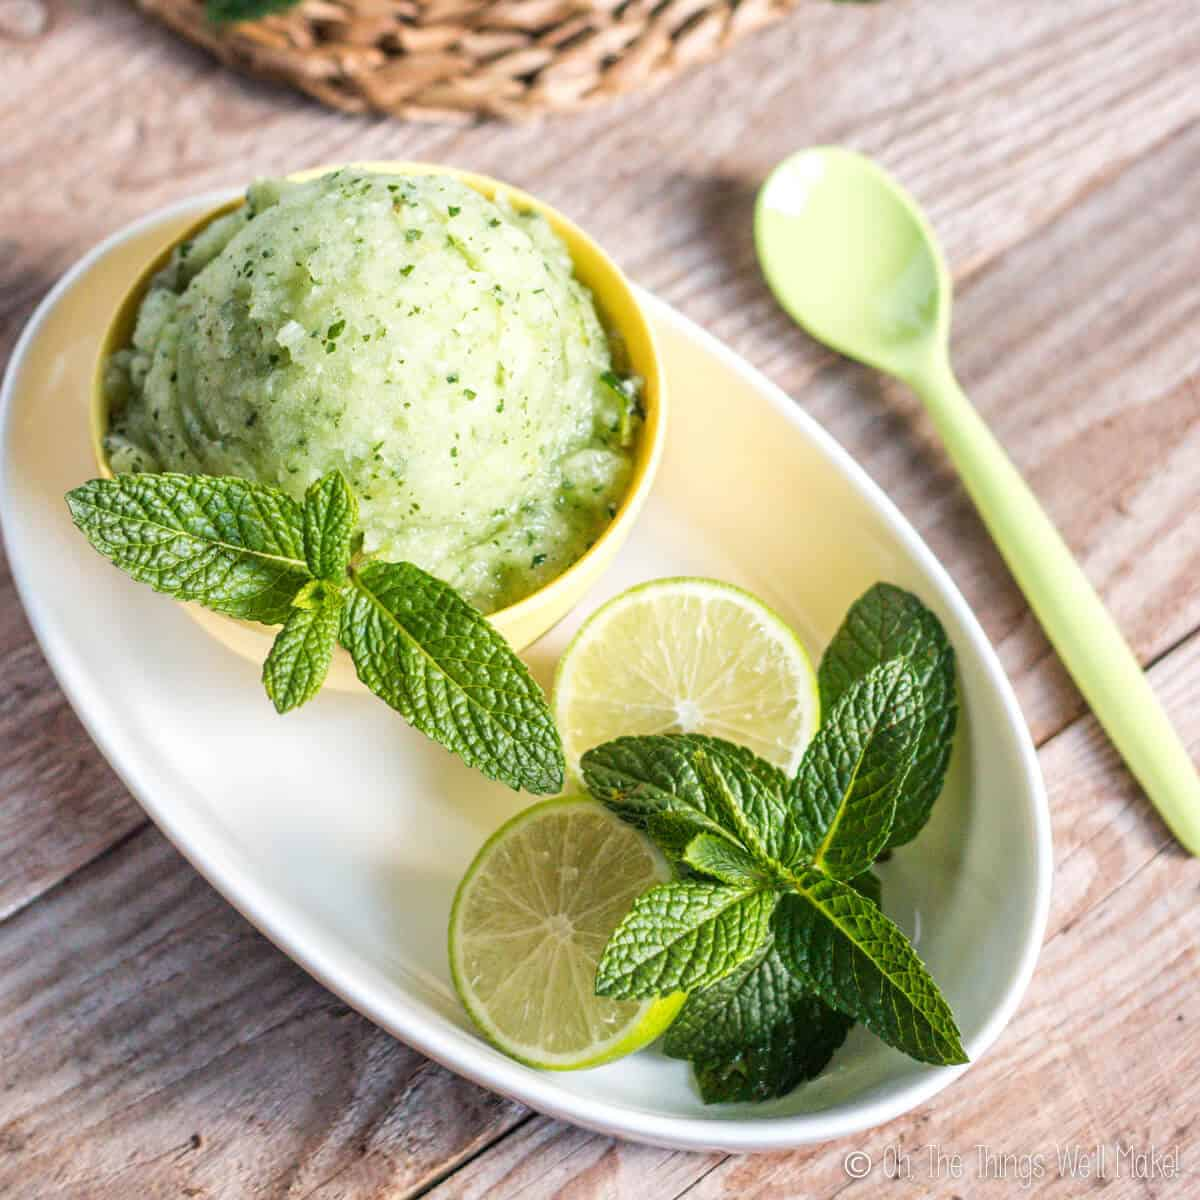 Overhead view of a mojito sorbet in a yellow bowl, garnished with spearmint and lime halves.